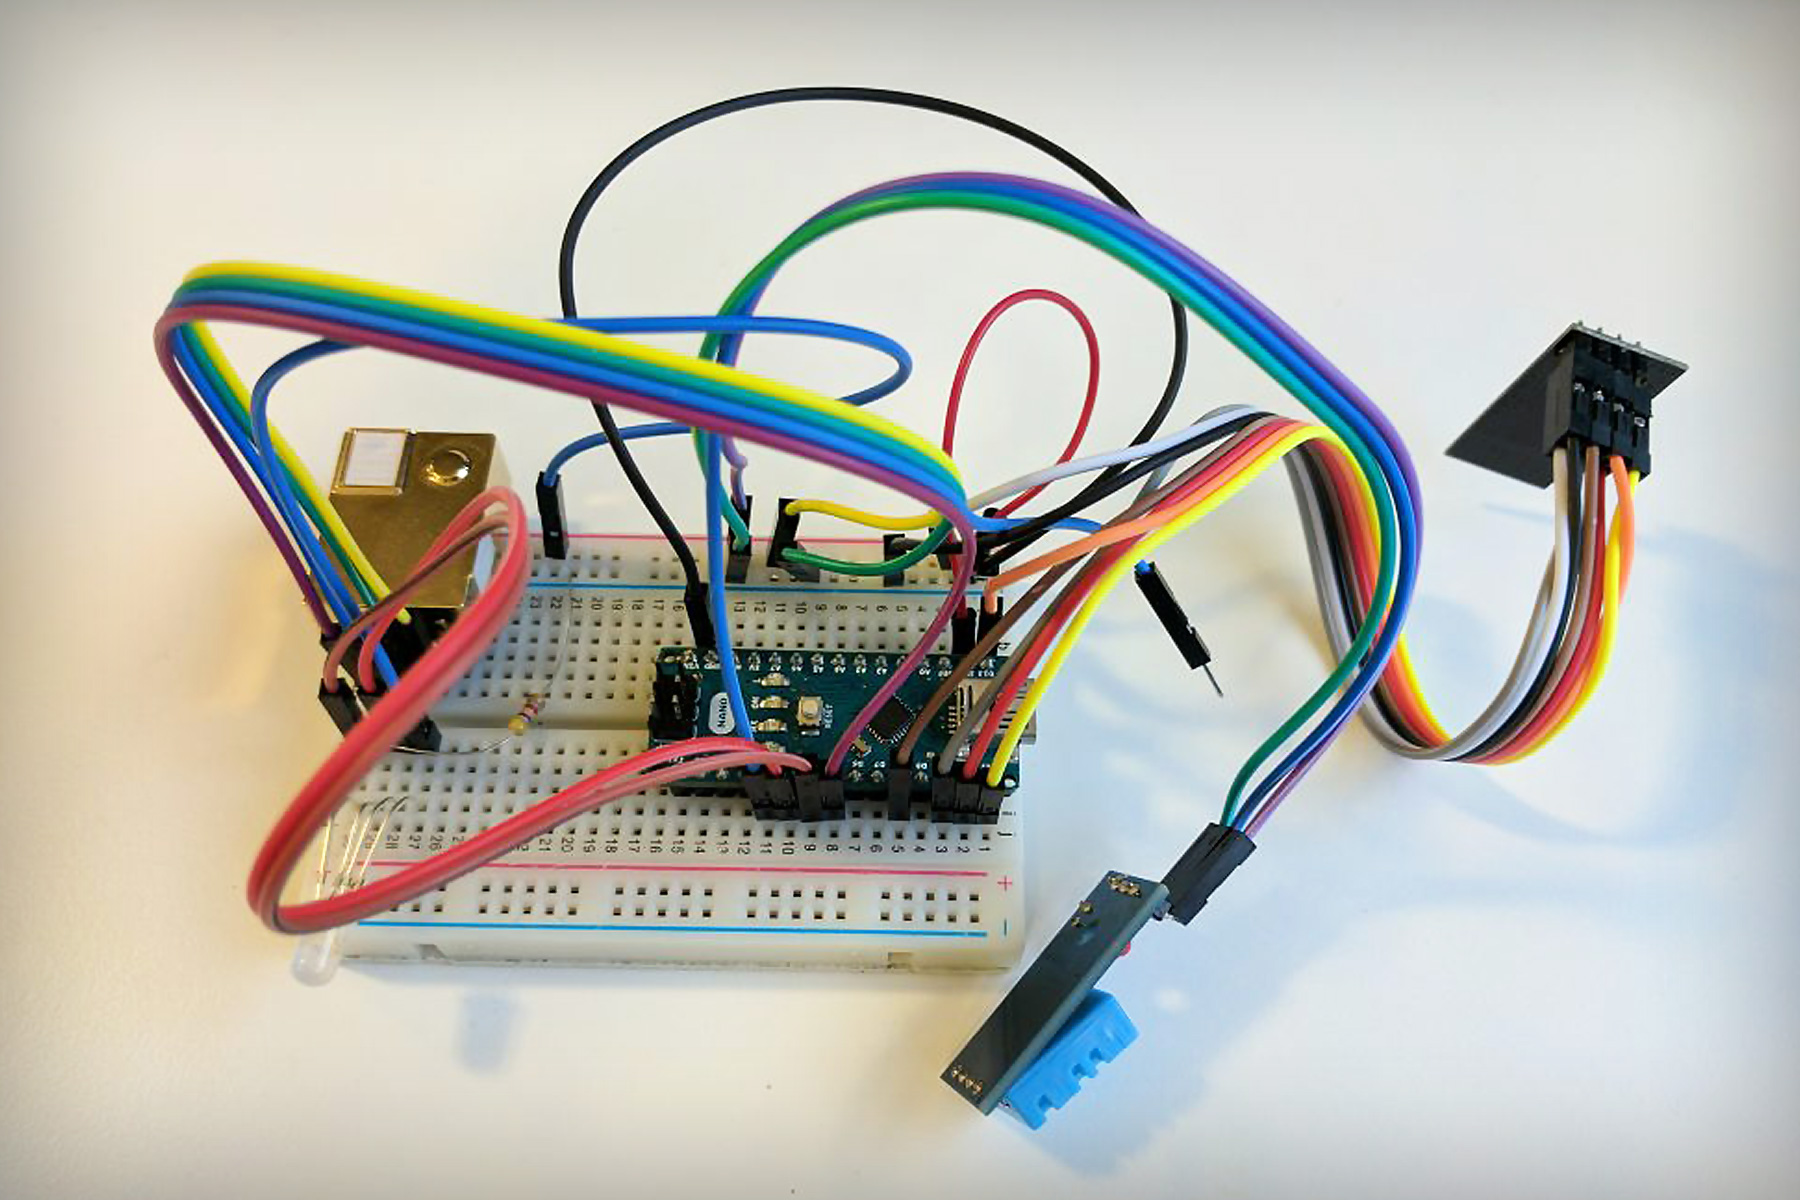 hight resolution of cheap and simple iot home sensor network